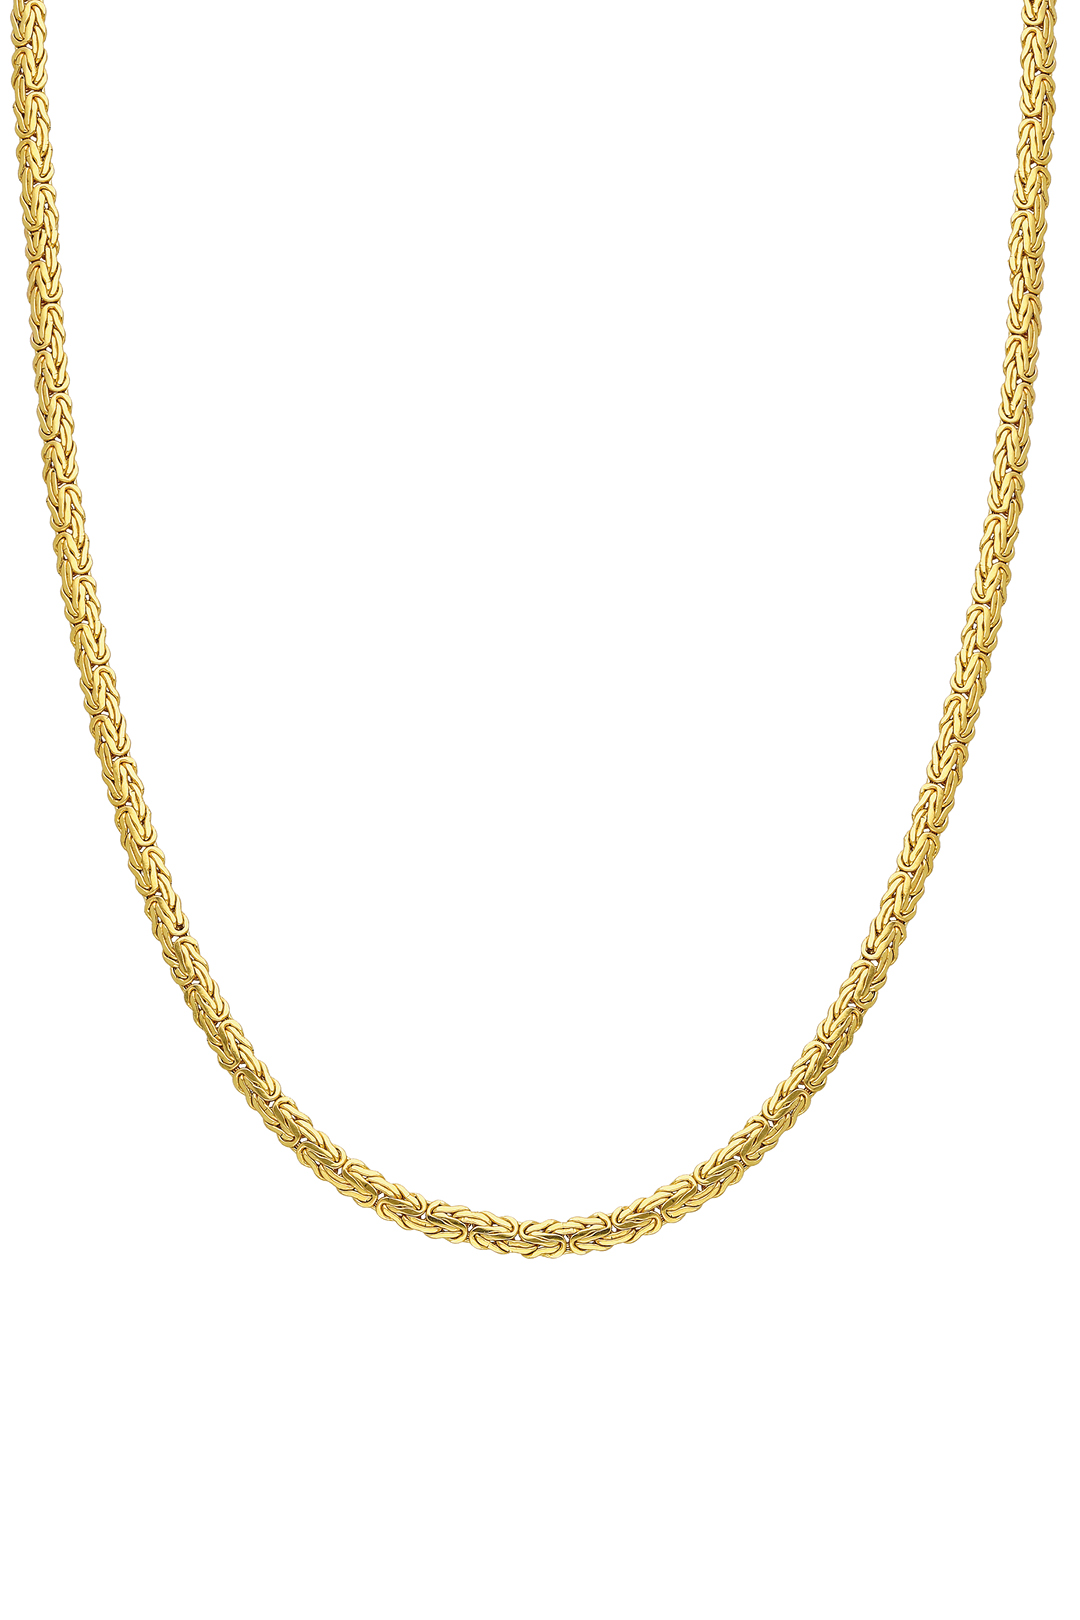 FLAT SHAPED RETRO CHAIN NECKLACE